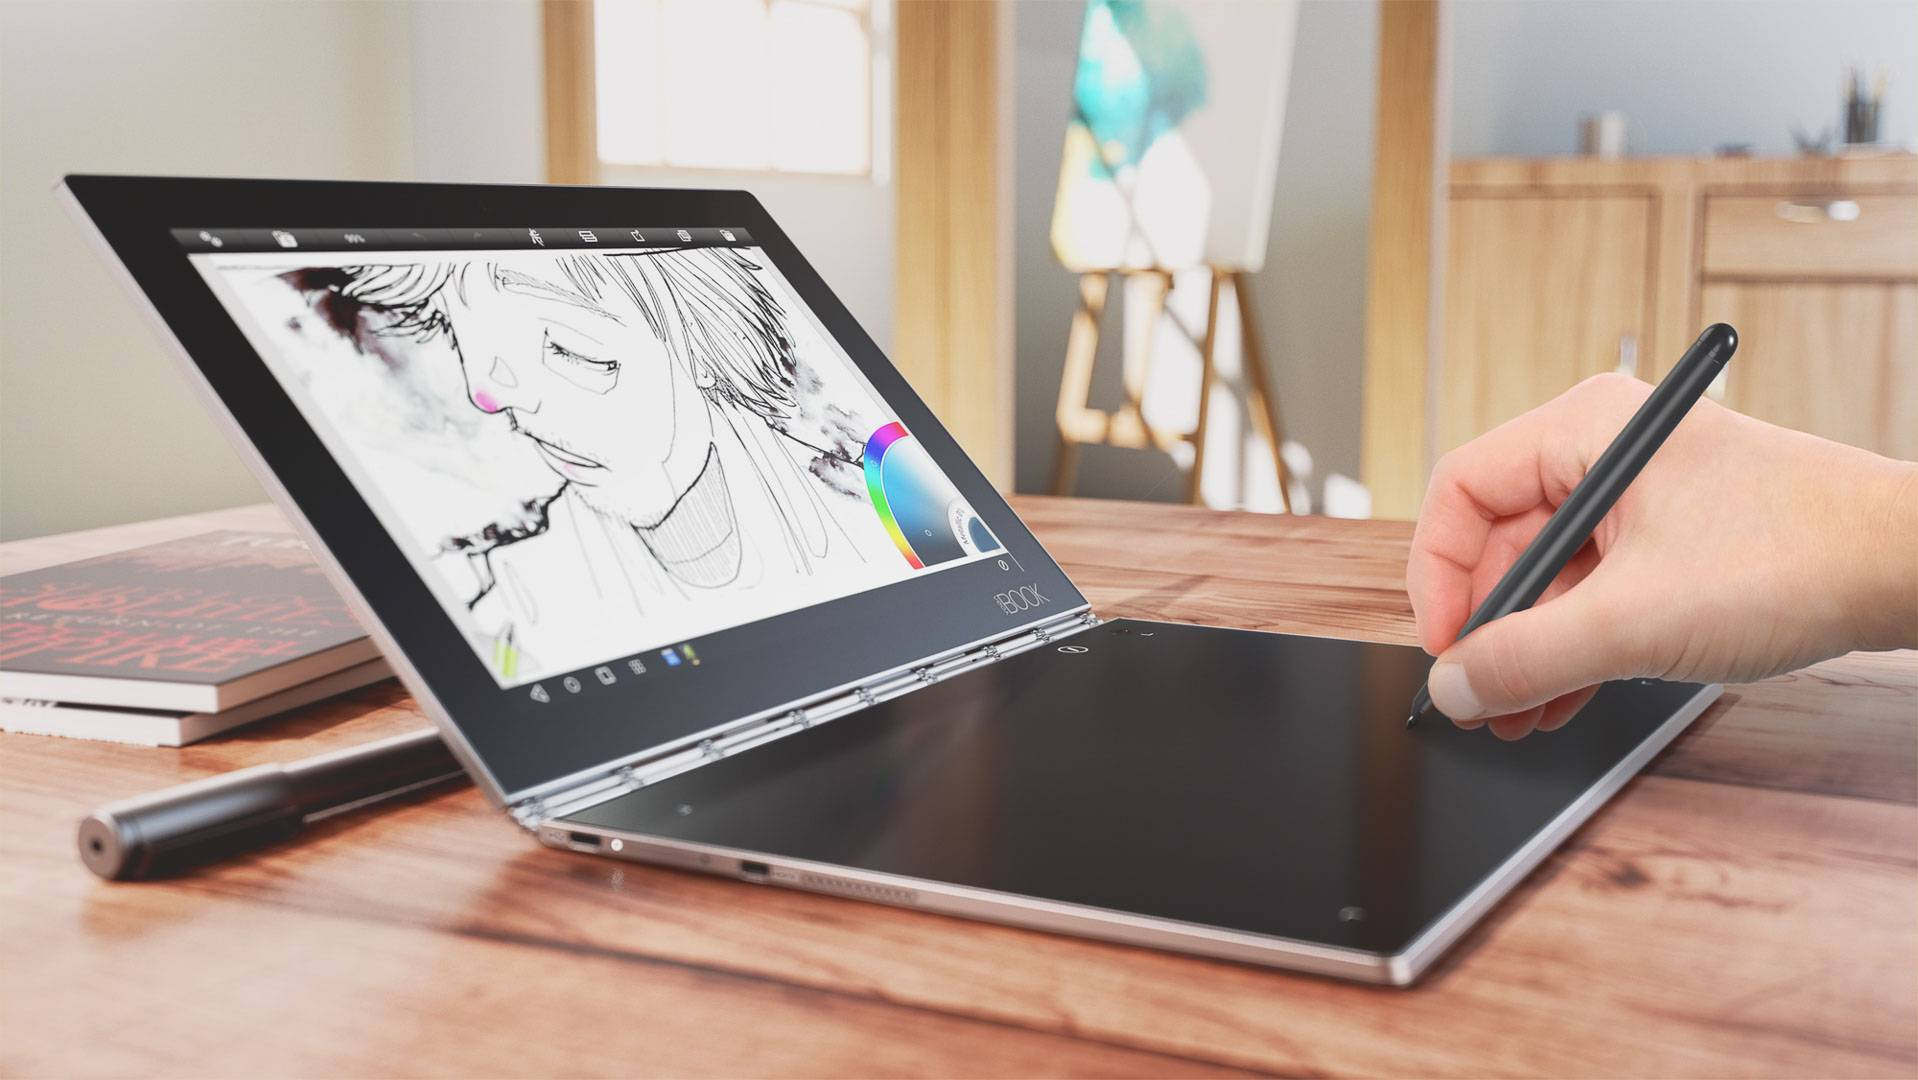 lenovo MIIX 5 Yoga 5 Pro YOGA BOOK PingWest Photo By Hao Ying-7